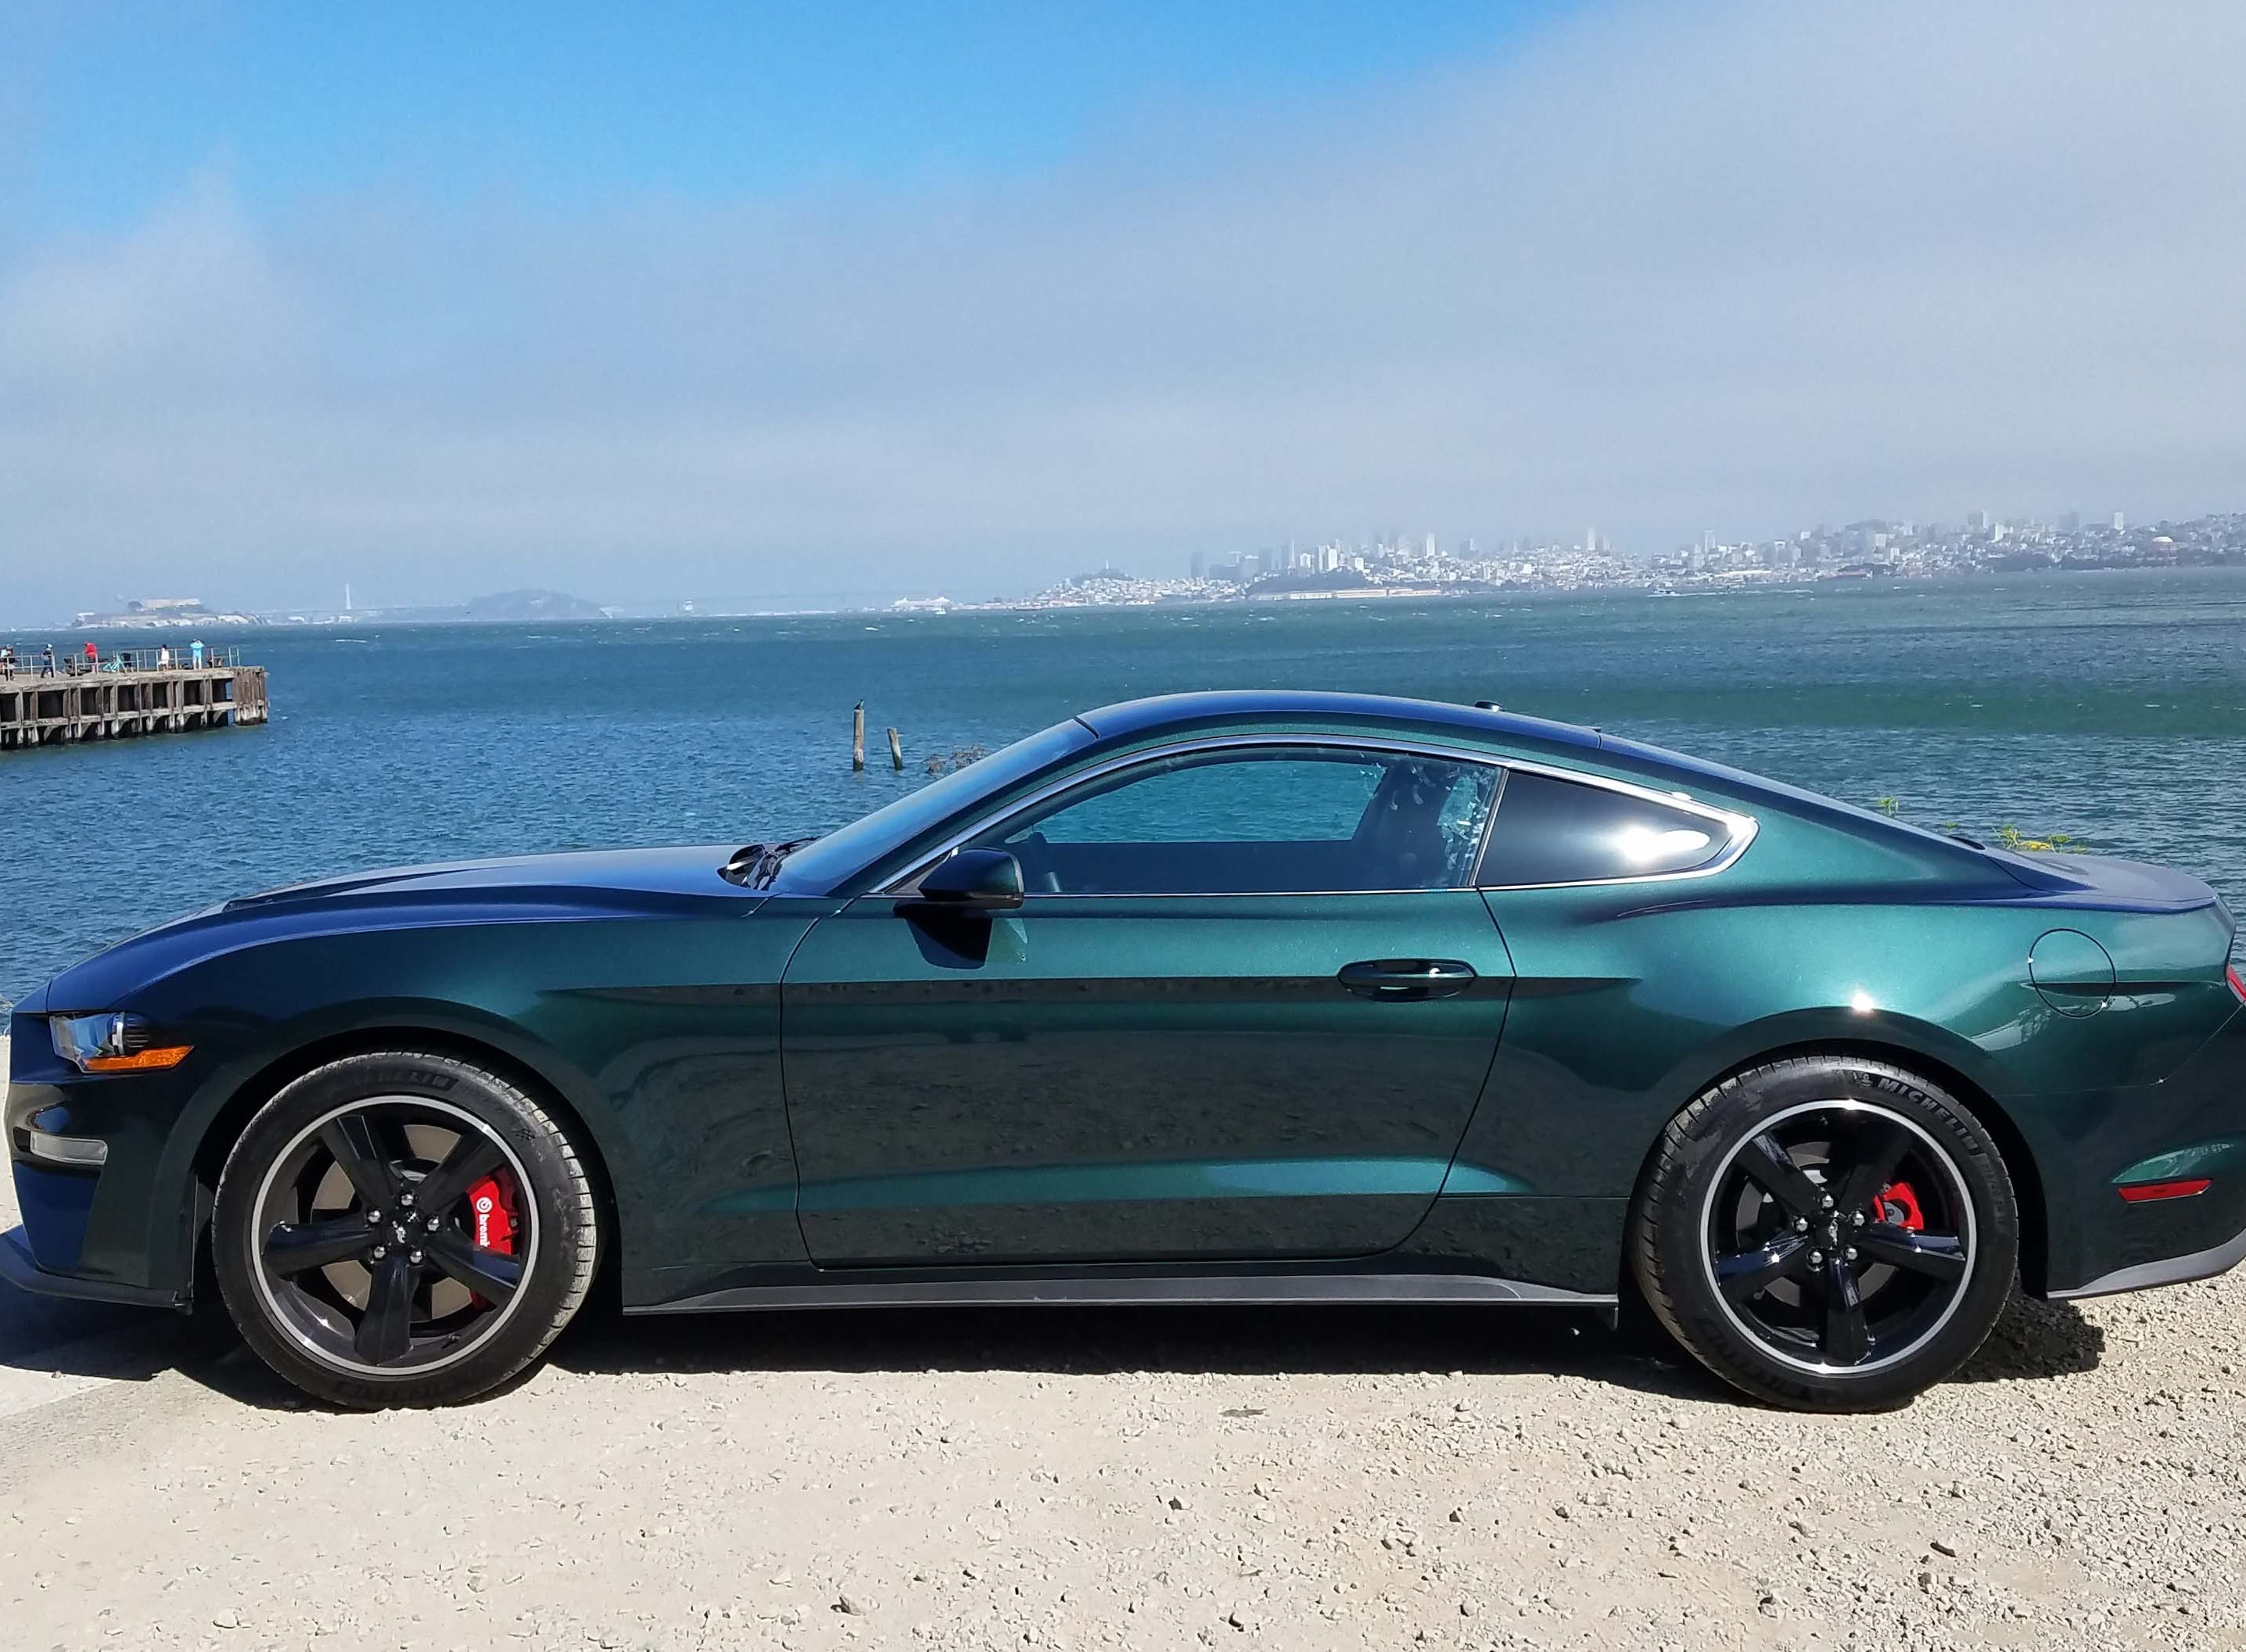 """The 2019 Ford Mustang Bullitt is a rear-wheel drive muscle car with 480 horsepower, a stiffened suspension and a coupe fastback made famous by the 1968 """"Bullitt"""" movie car."""